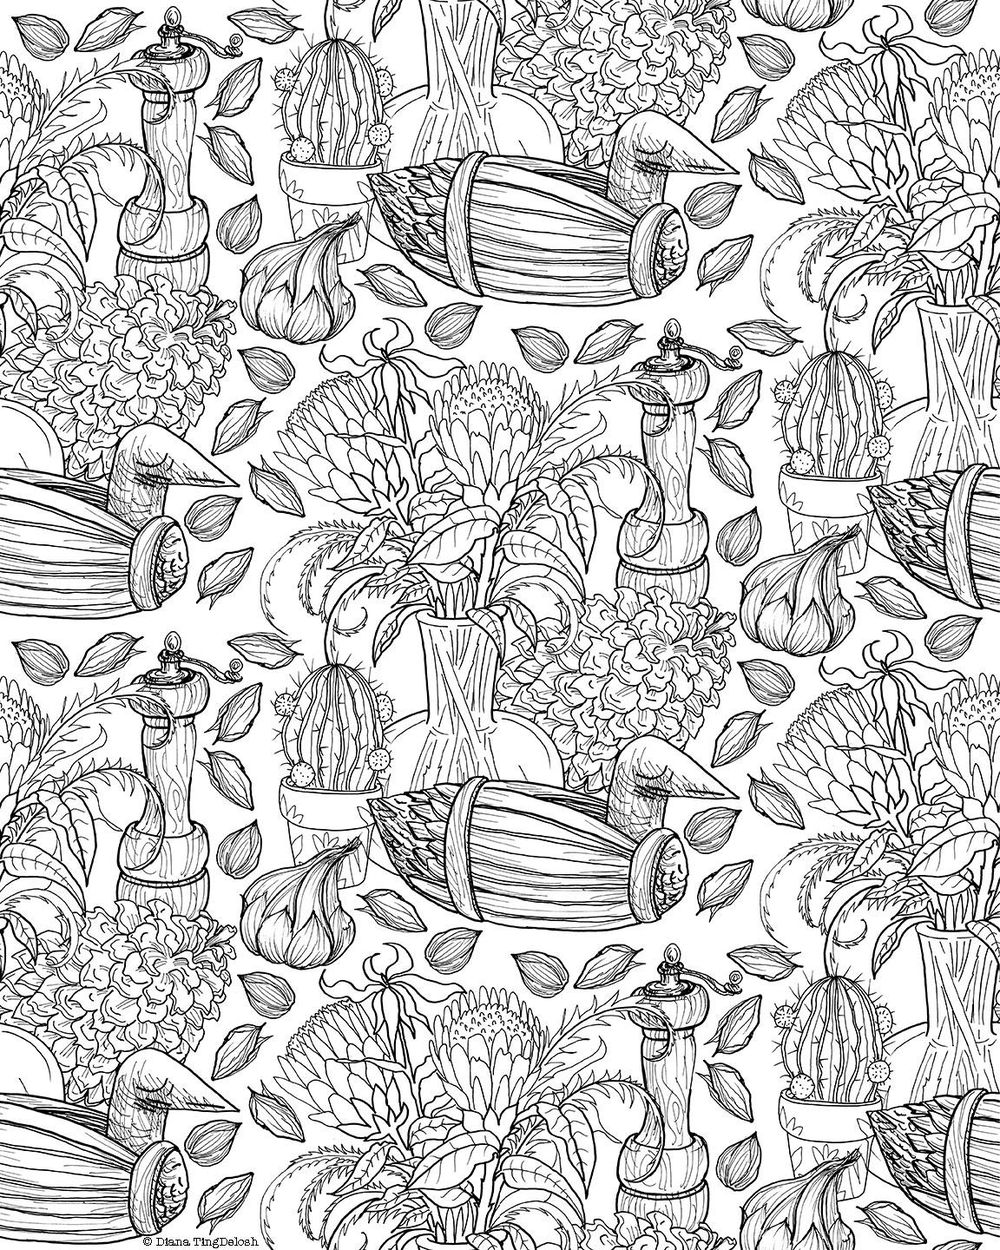 Proteas Pattern - image 3 - student project